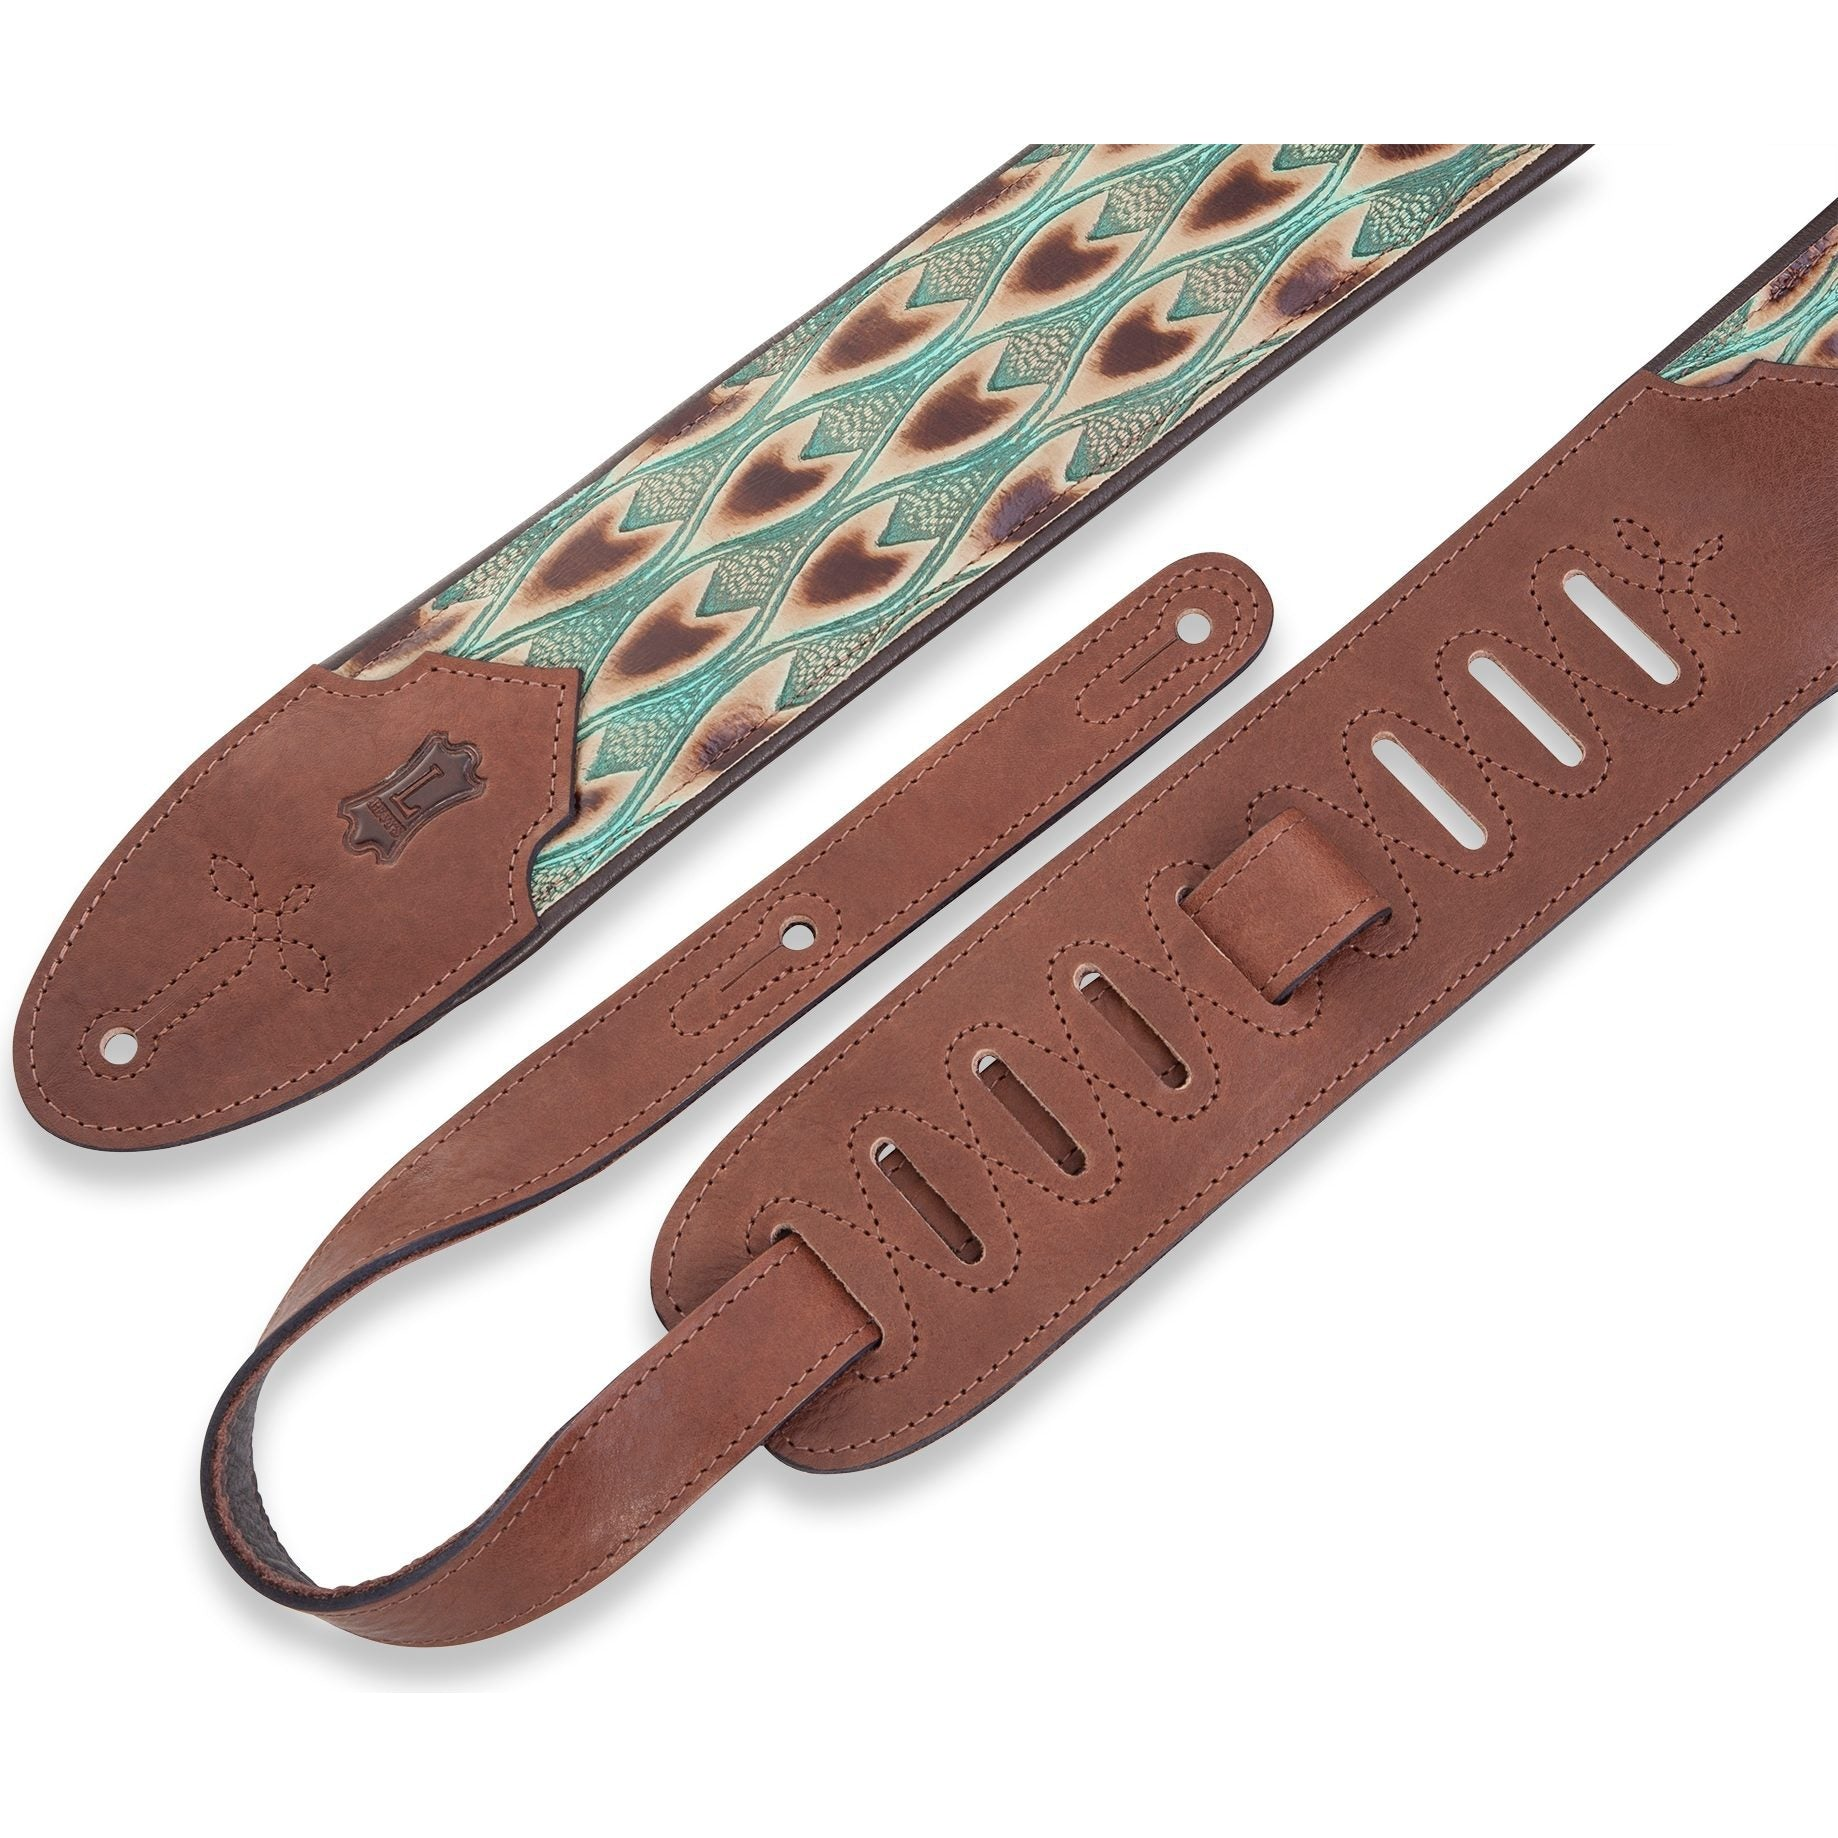 Levy's 3 Inch Wide Embossed Leather Guitar Strap, Arrowhead Turquoise, M4WP-004